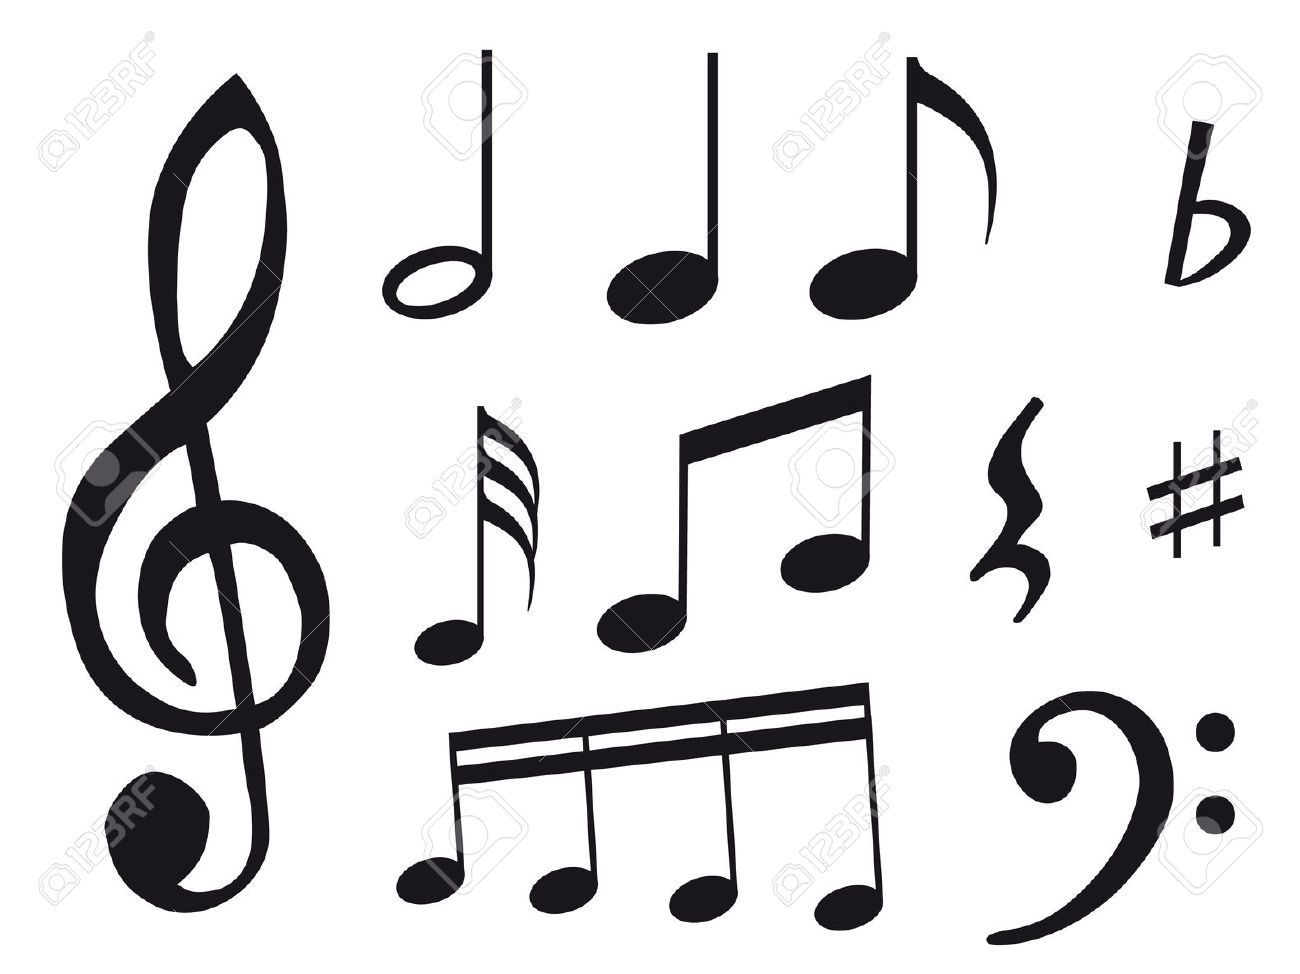 Different kind of music notes as symbol of sheet music royalty different kind of music notes as symbol of sheet music royalty biocorpaavc Images